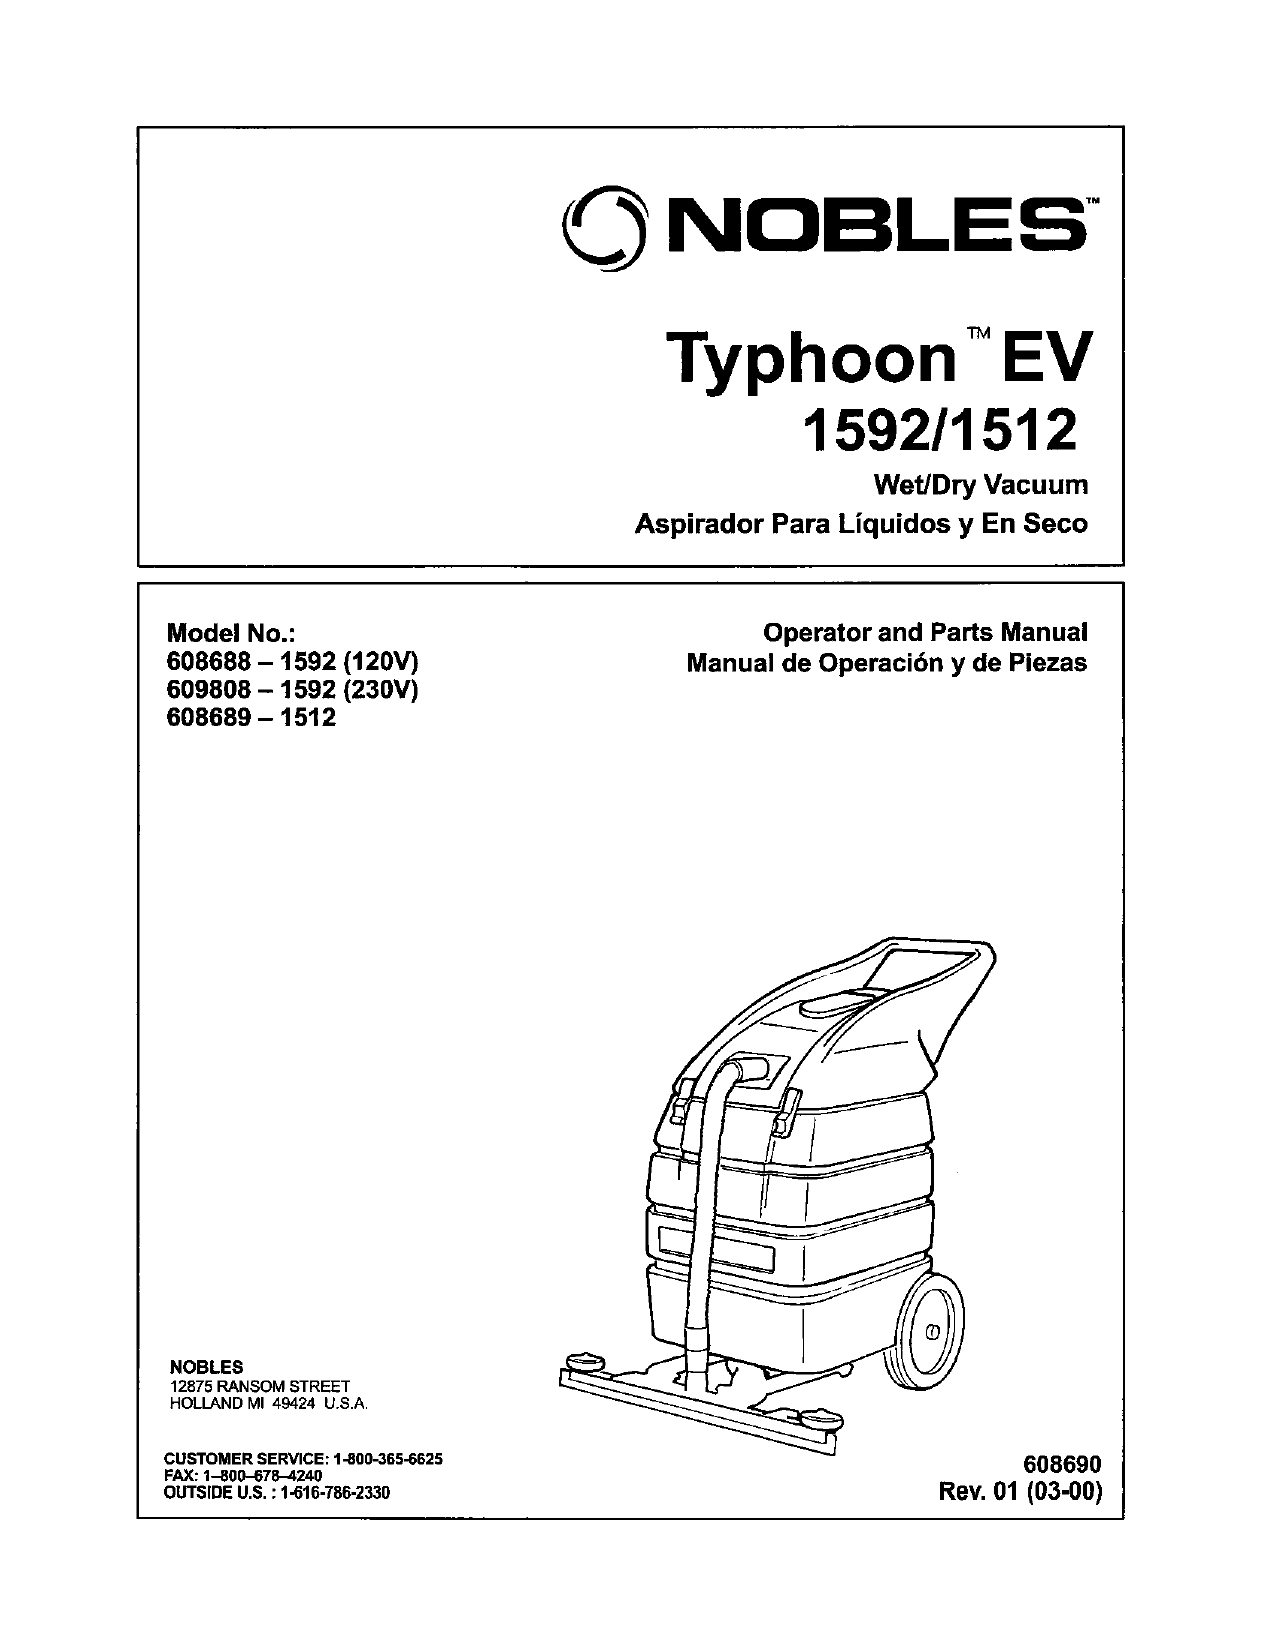 PDF manual for Nobles Vacuum Typhoon EV 1592